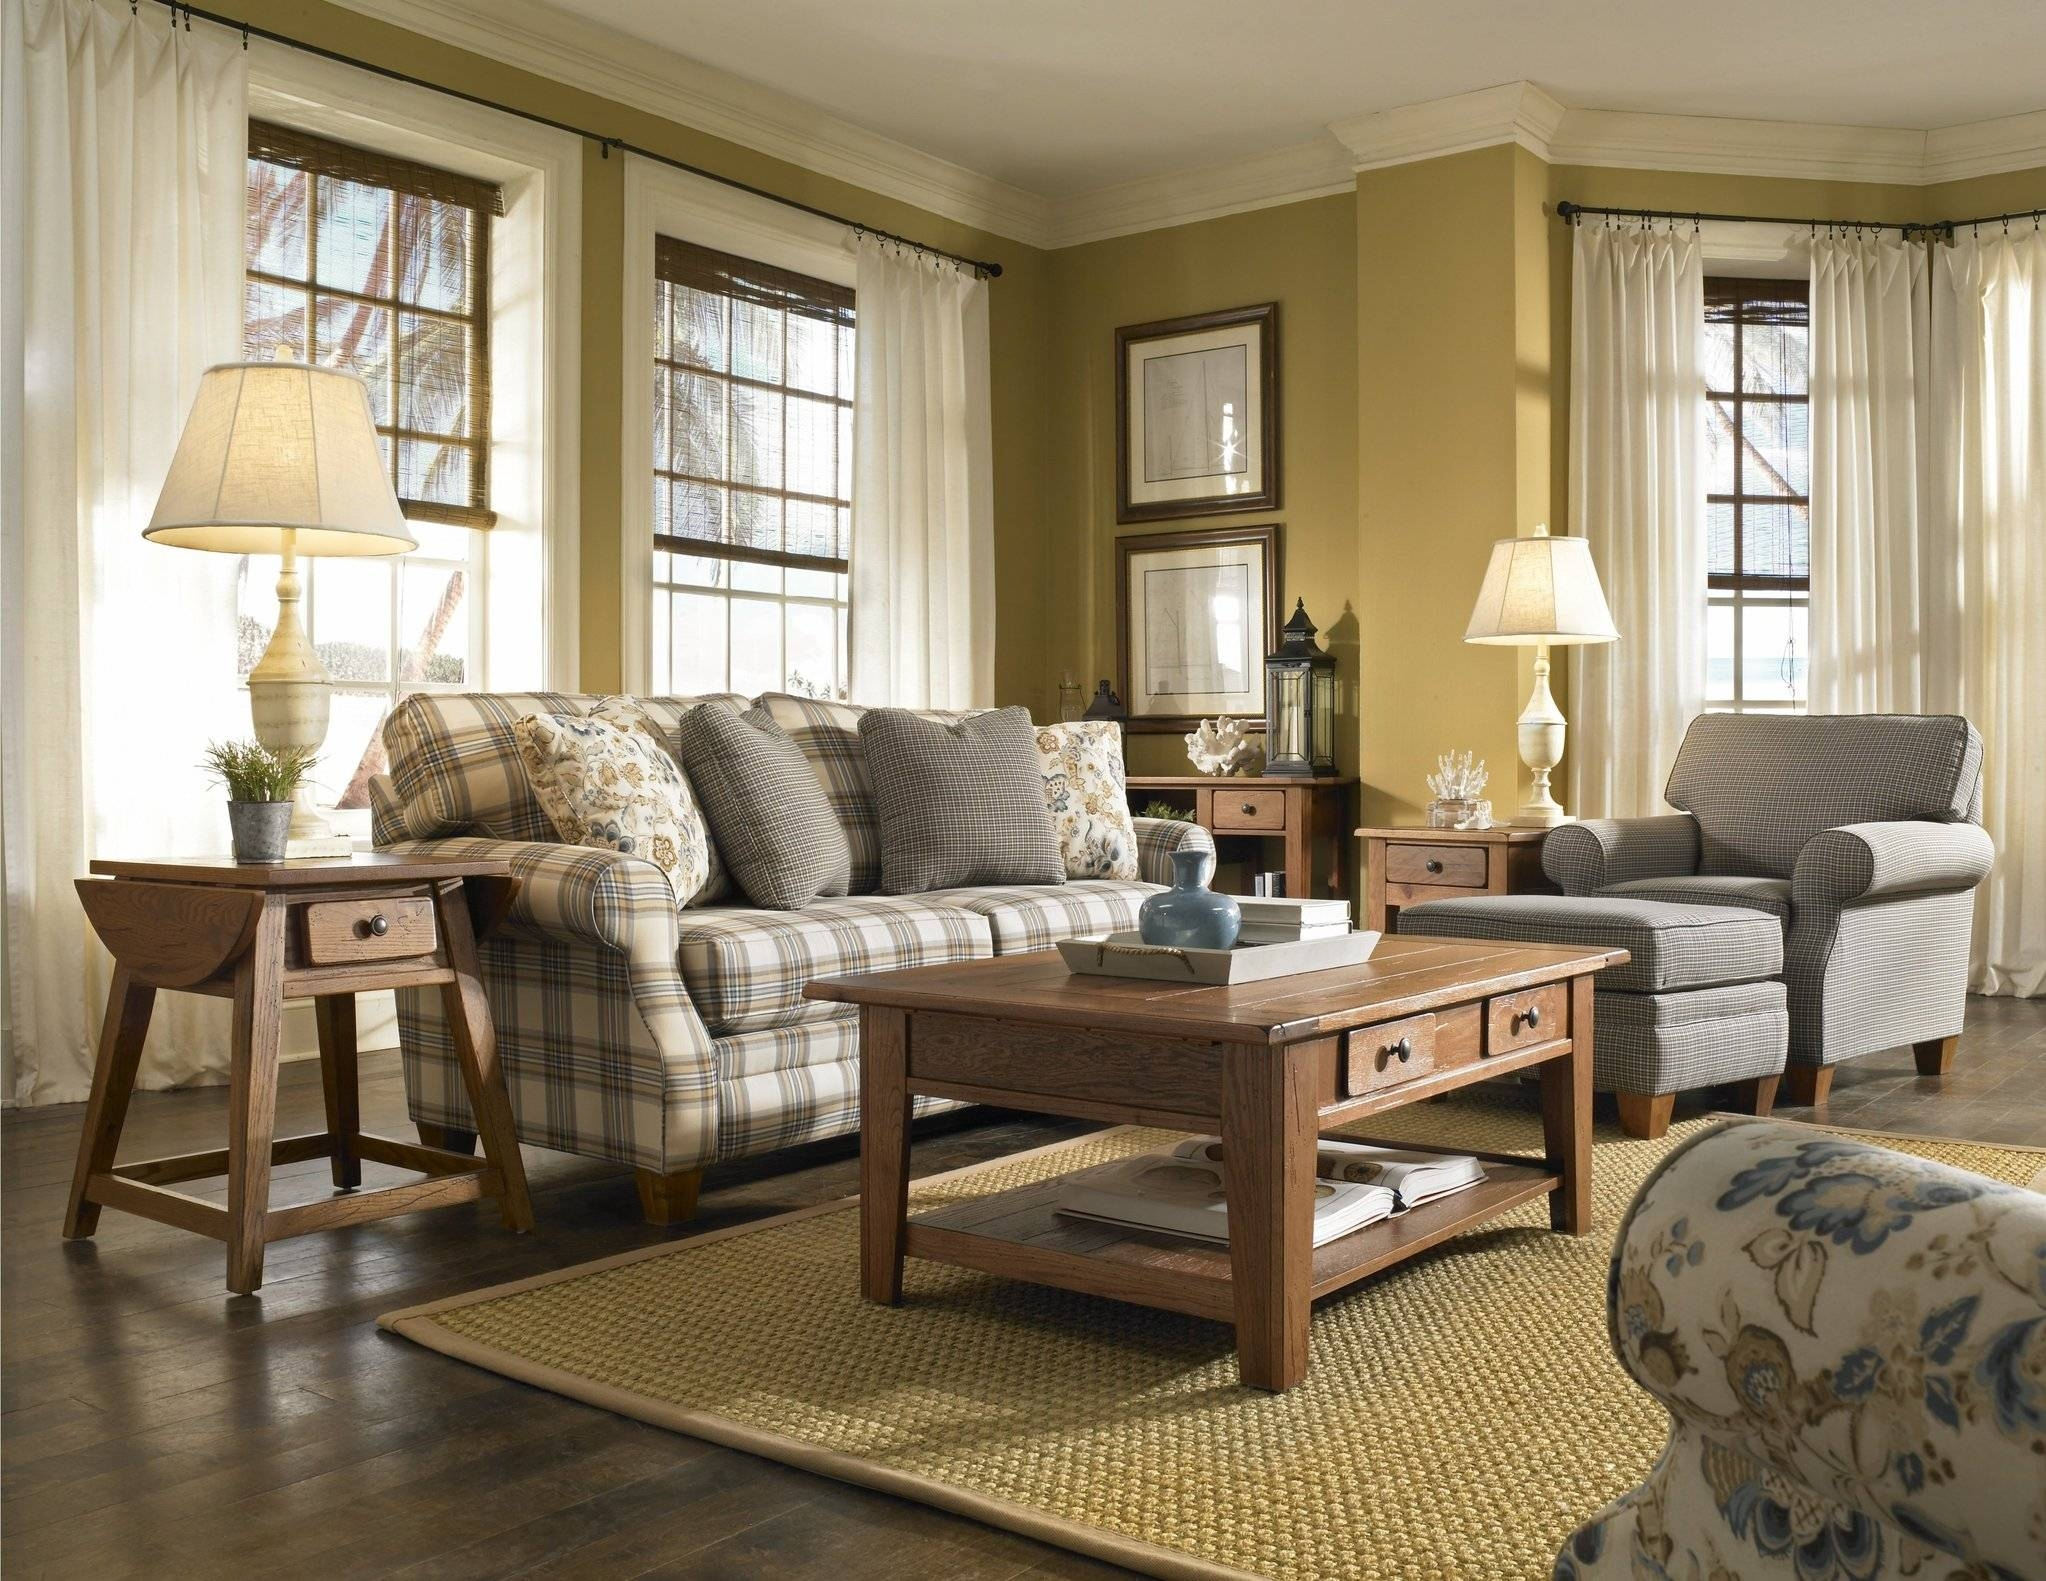 Furniture : Awesome Country Style Living Room Furniture With White inside Country Style Sofas (Image 8 of 15)